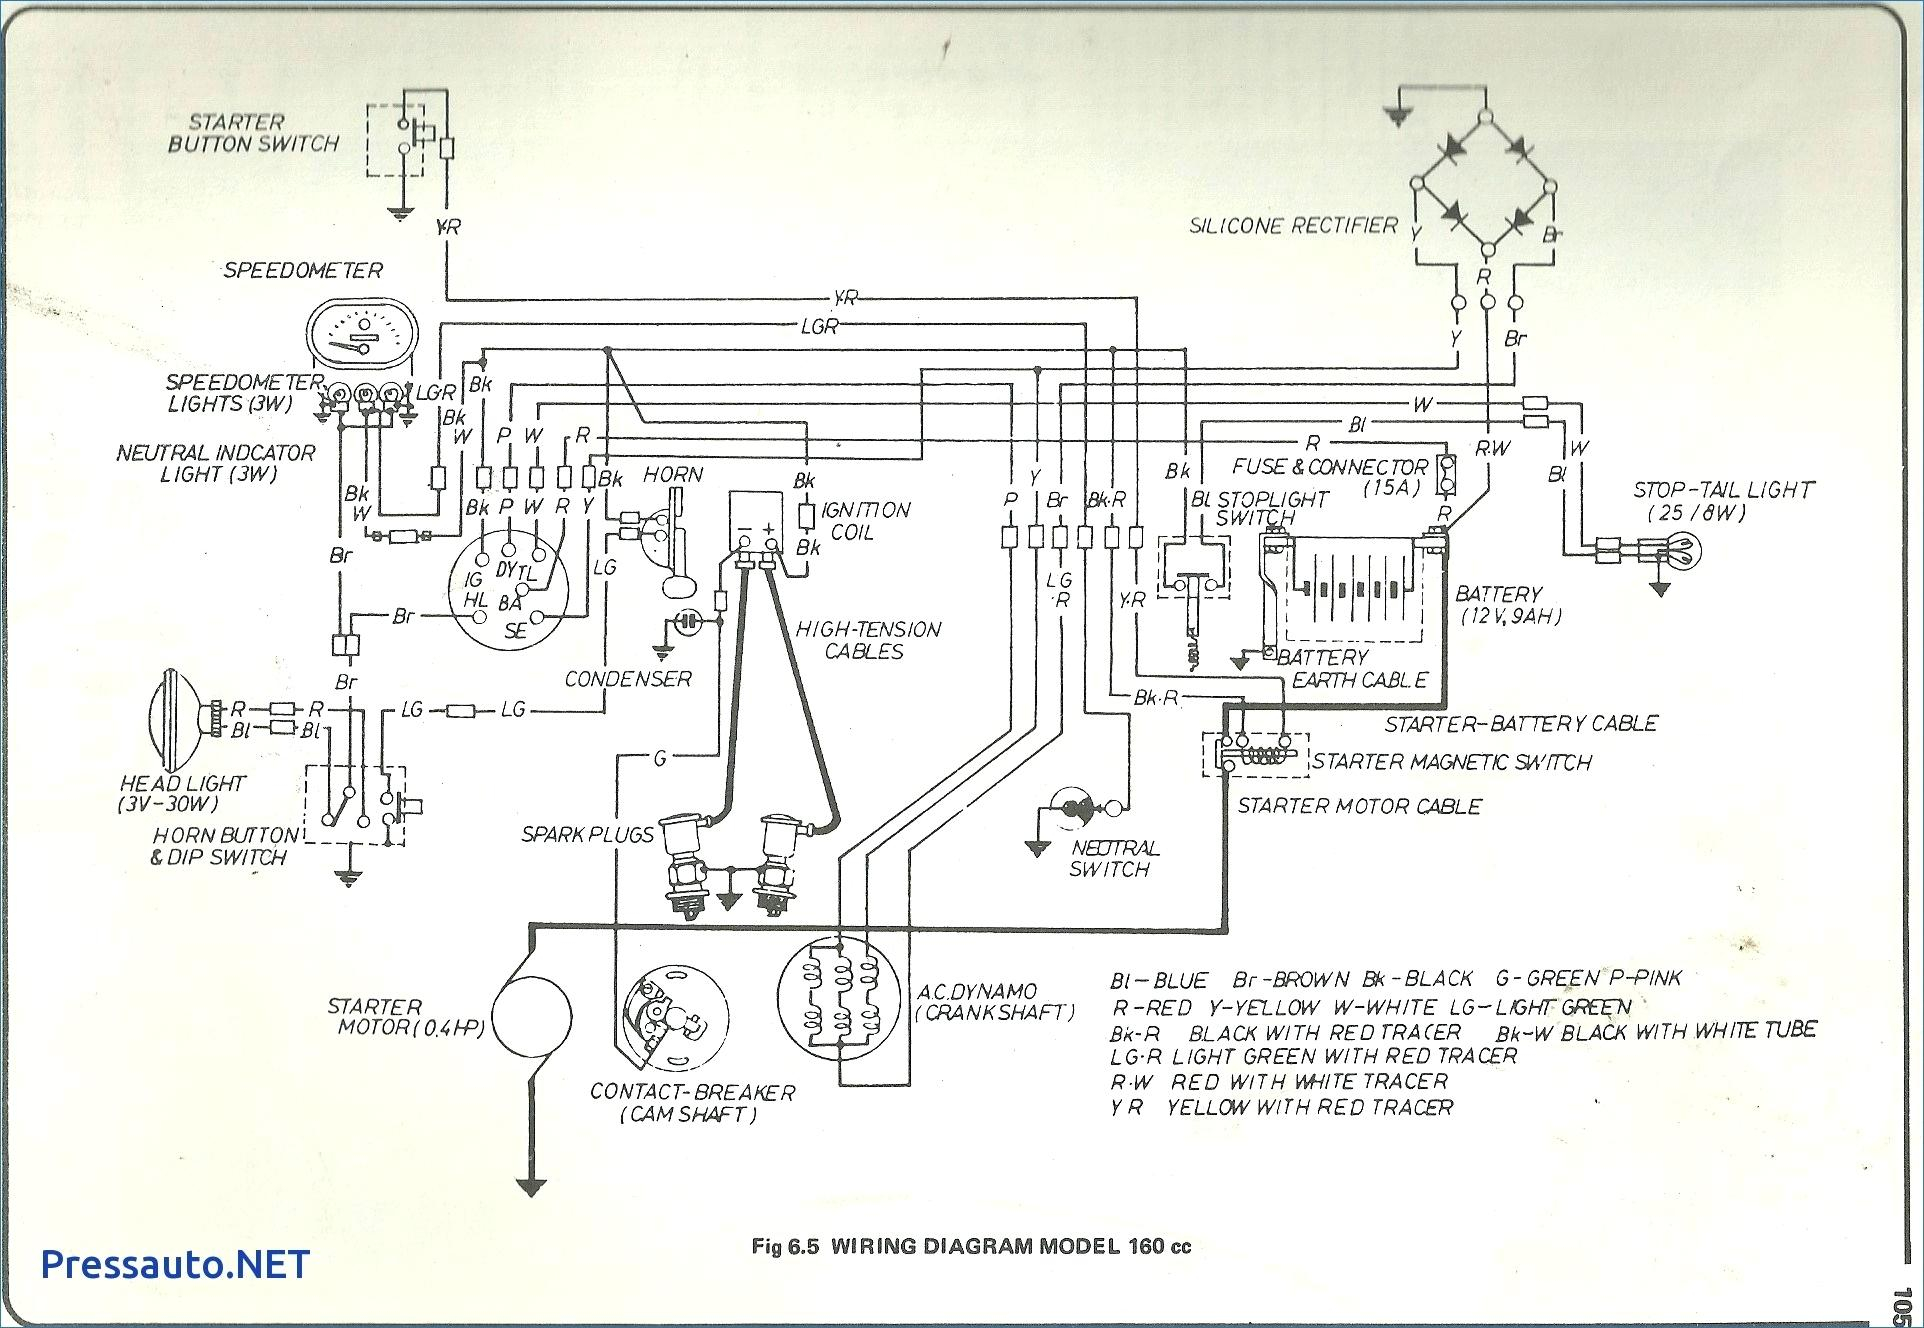 kenmore dryer wiring diagram Collection-Wiring Diagram for Kenmore Dryer Beautiful Maytag Dryer Wiring Schematic Built Electric Diagram Gallery 4 8 7-m